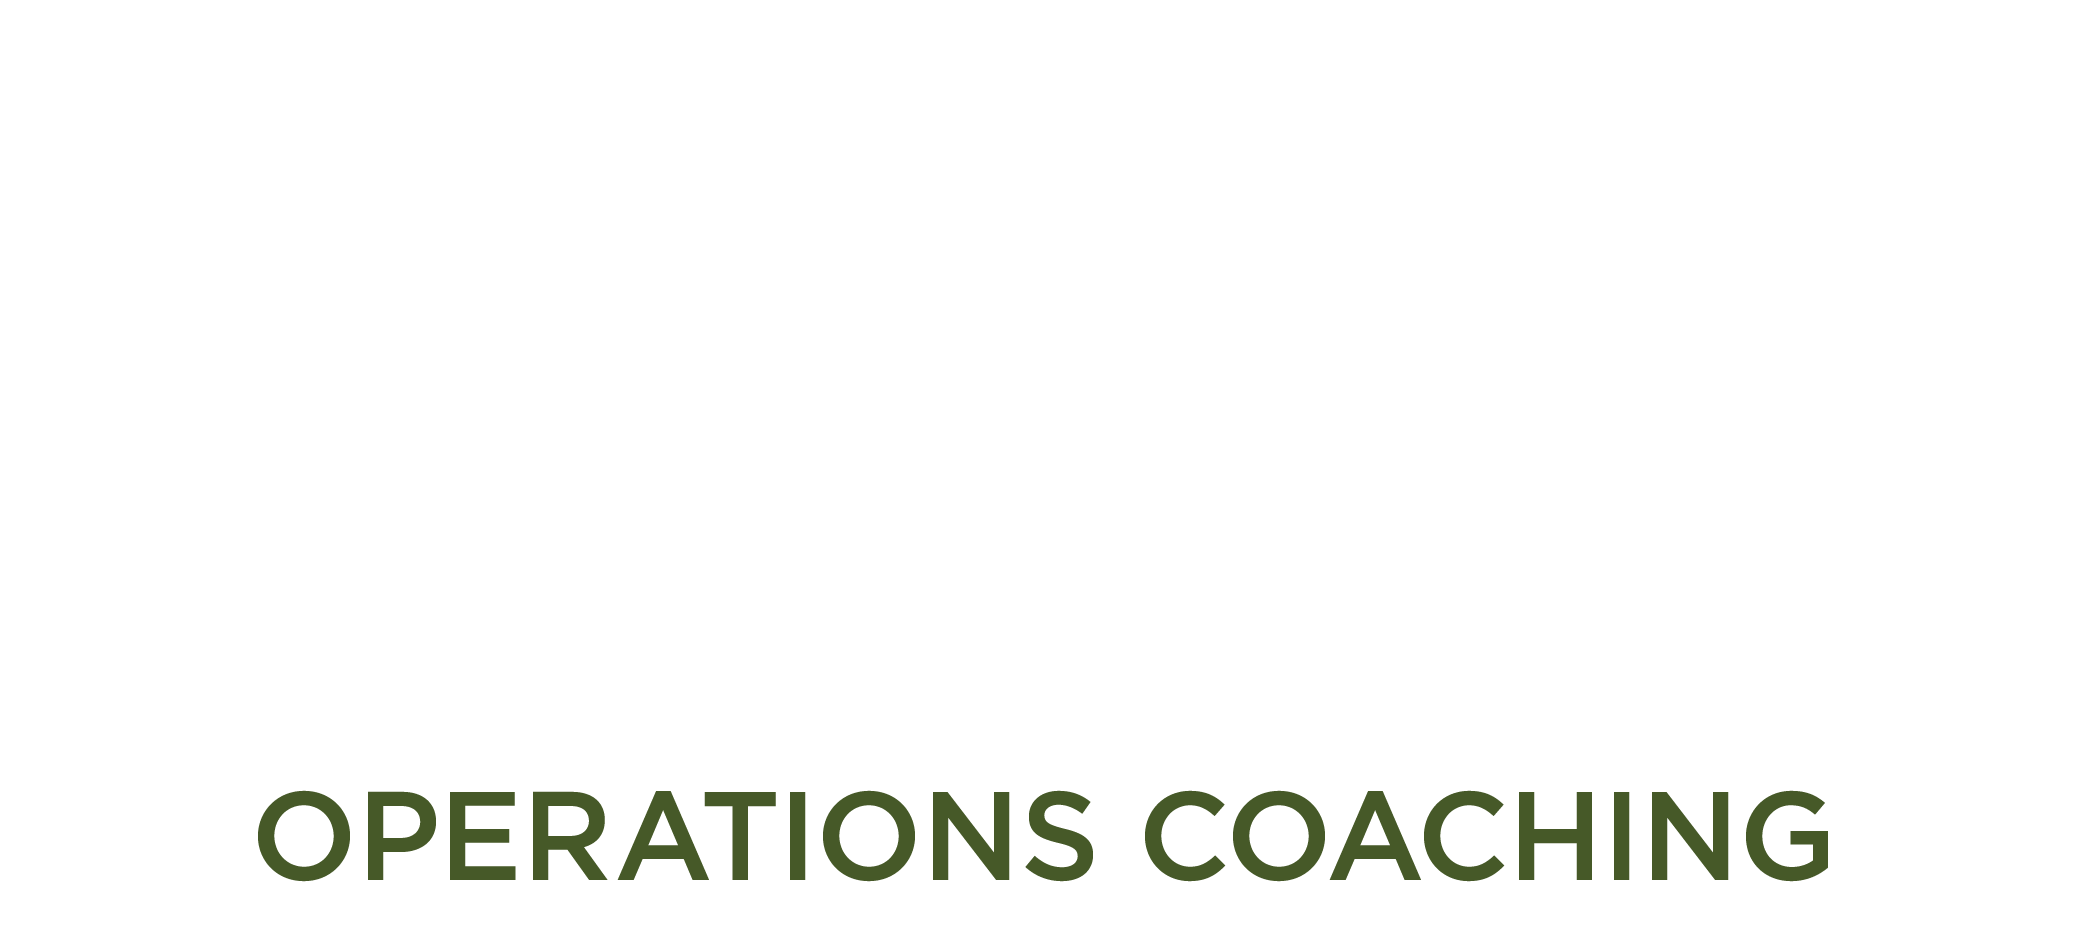 Amplified Solutions Coaching